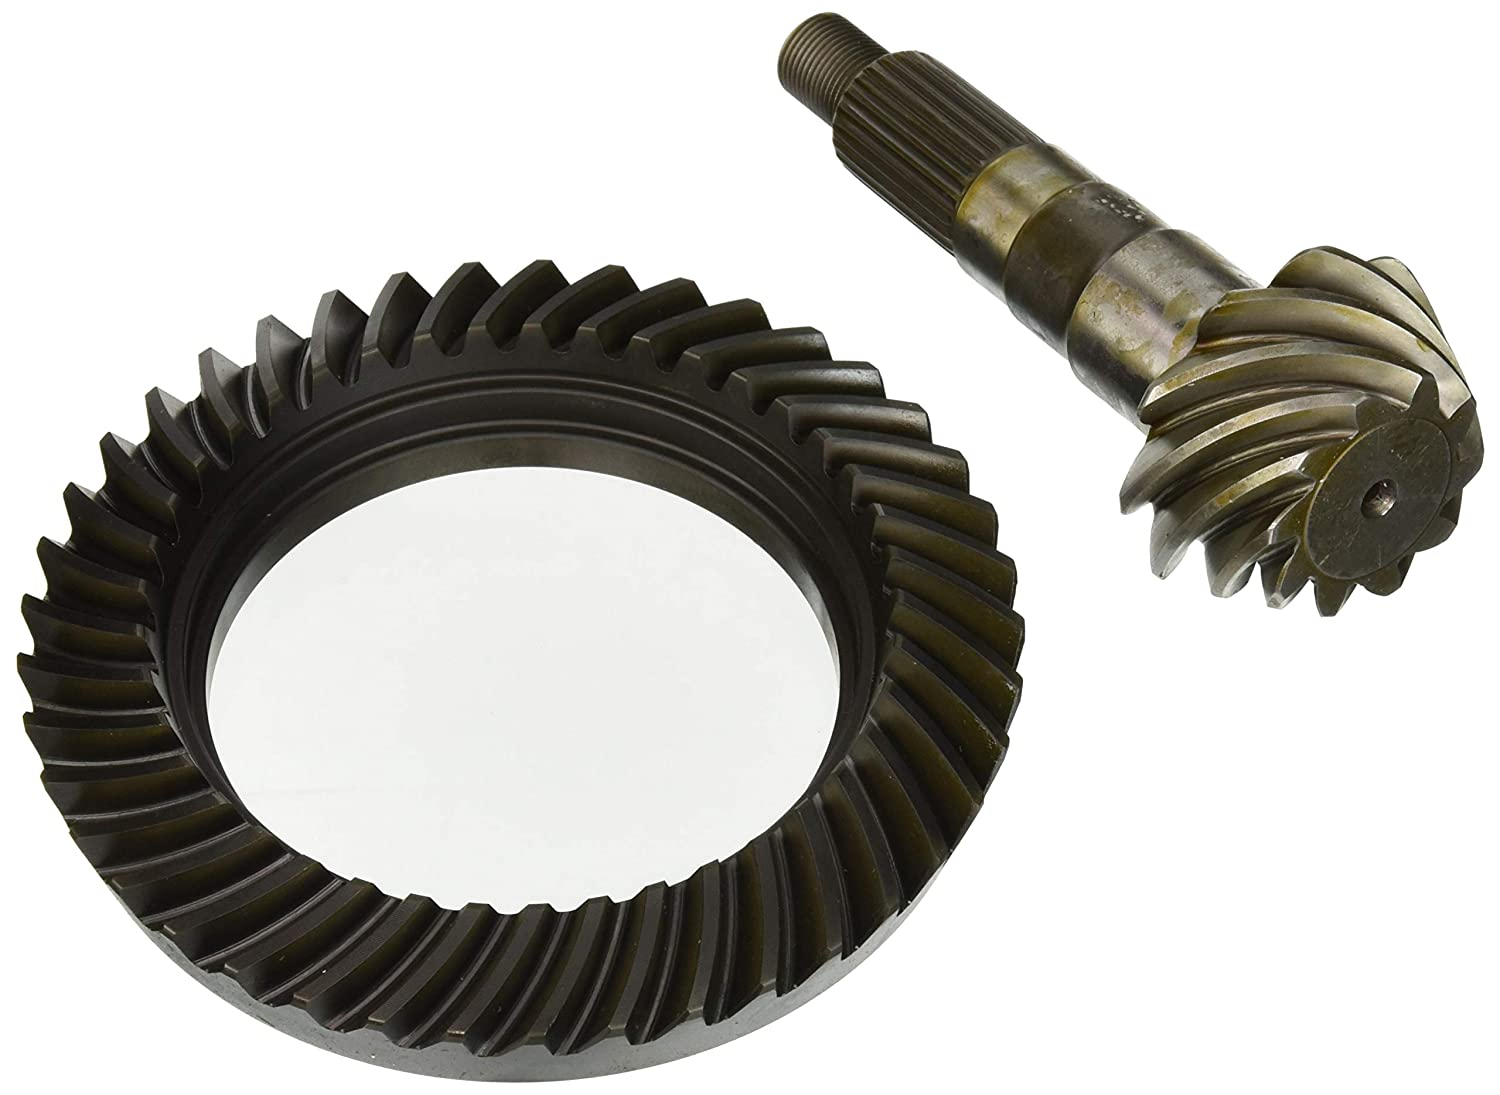 EXCel D30411TJ Ring and Pinion (Dana 30 4.11 TJ)